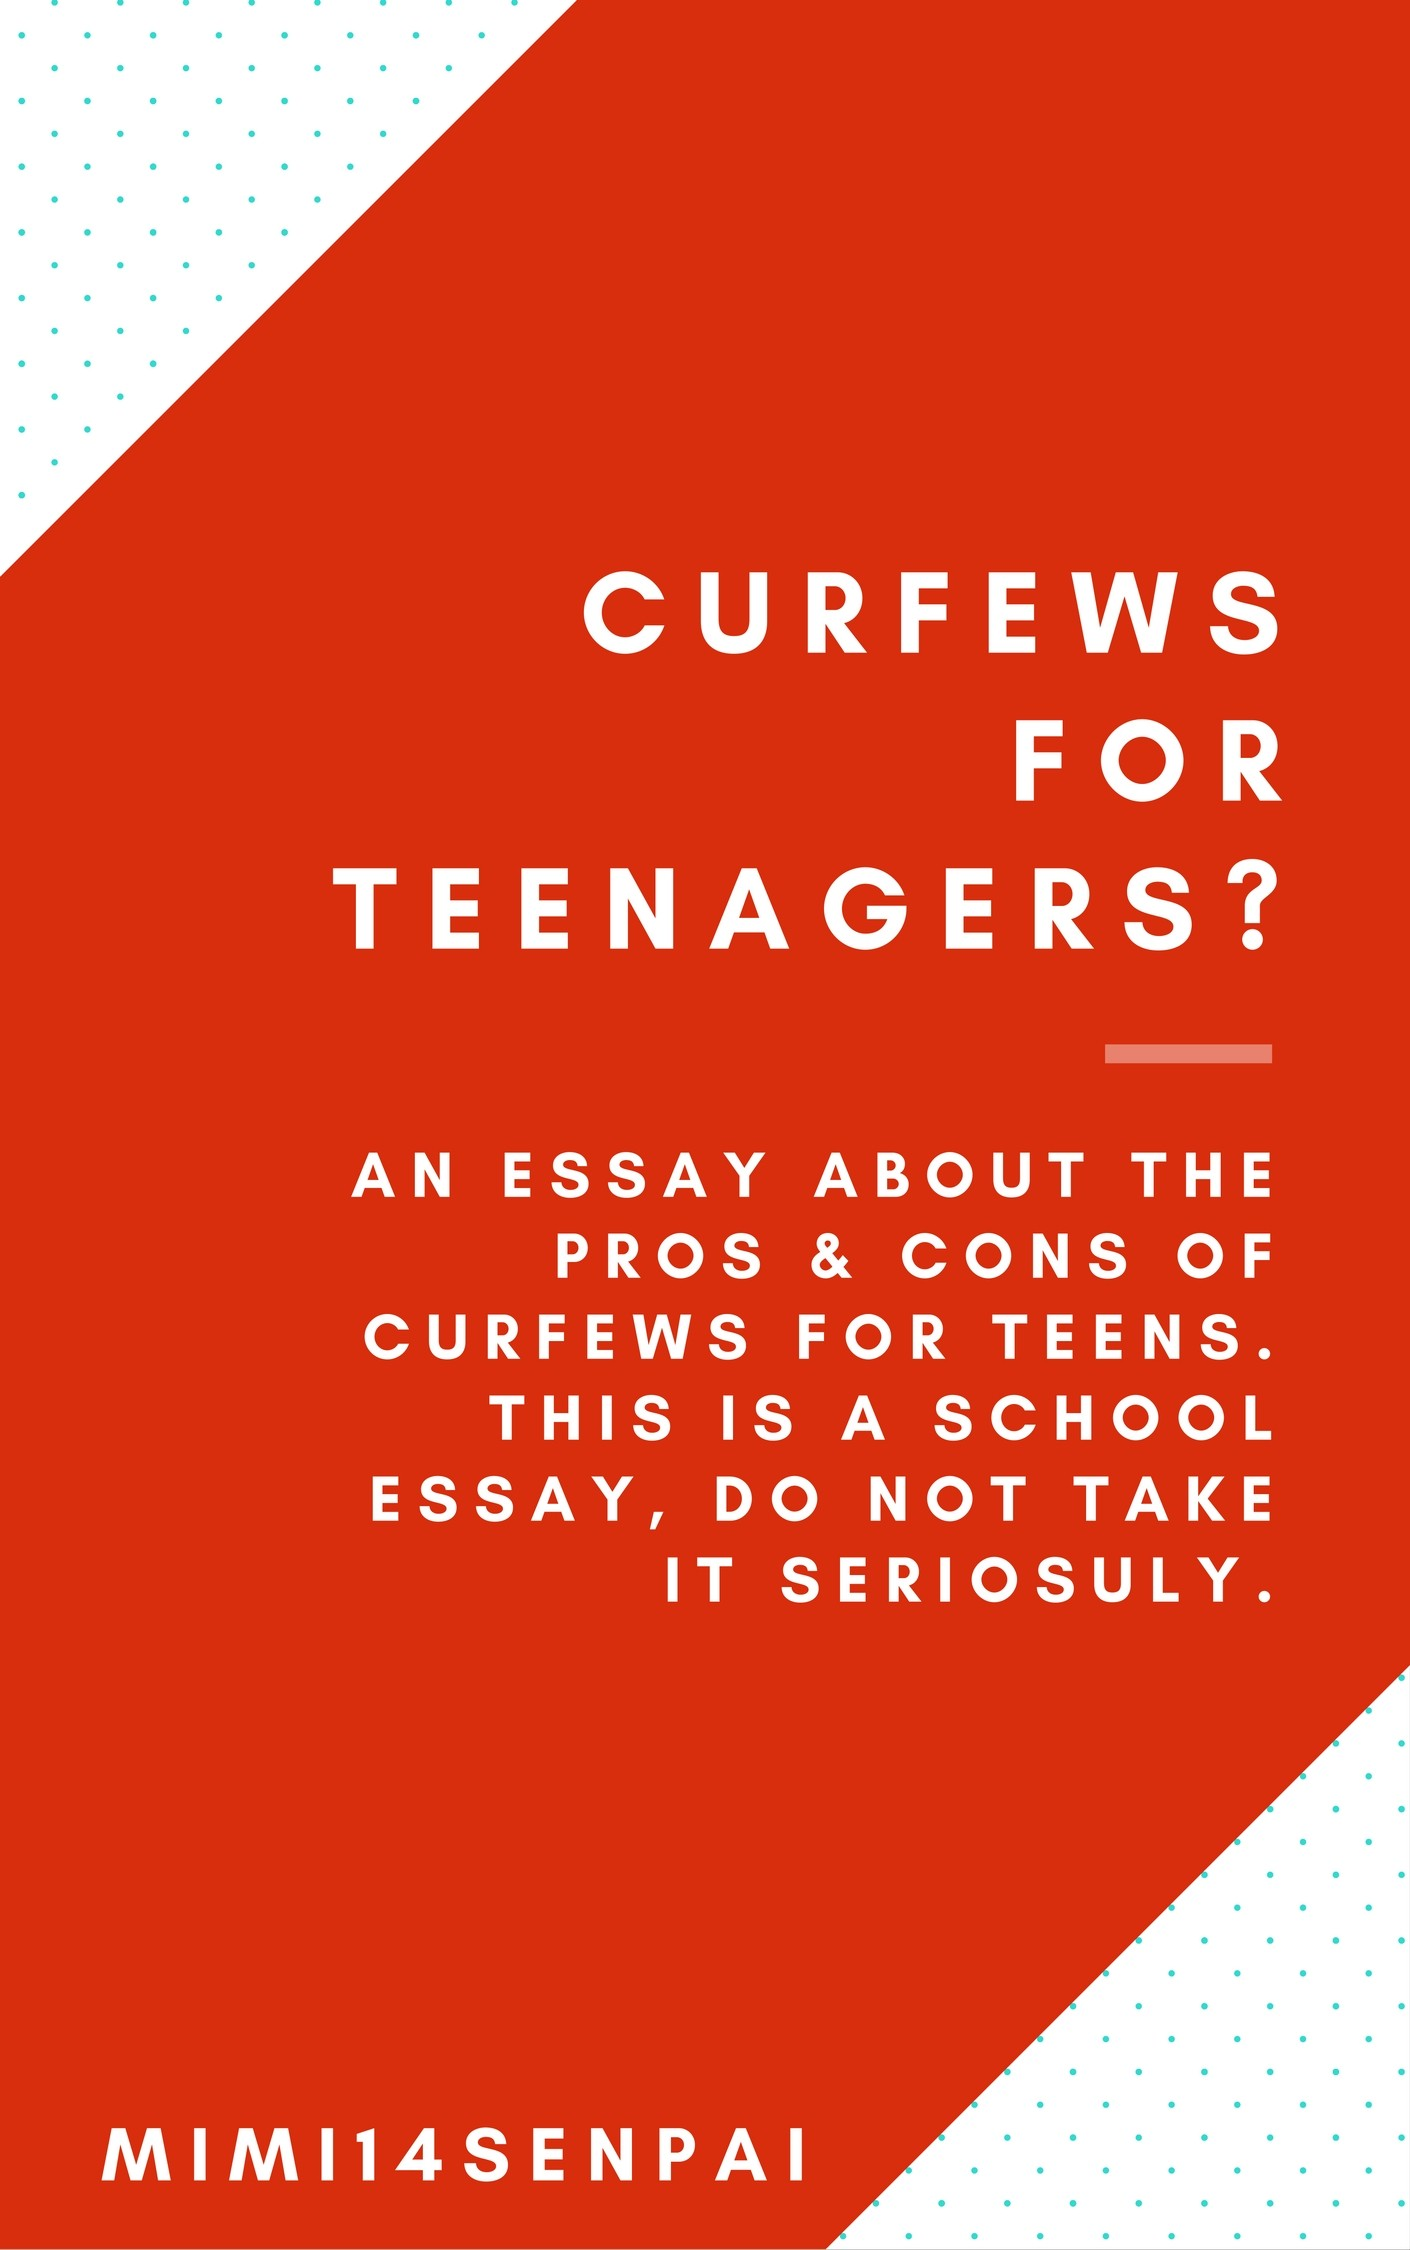 curfews for teenagers essay by mimisenpai